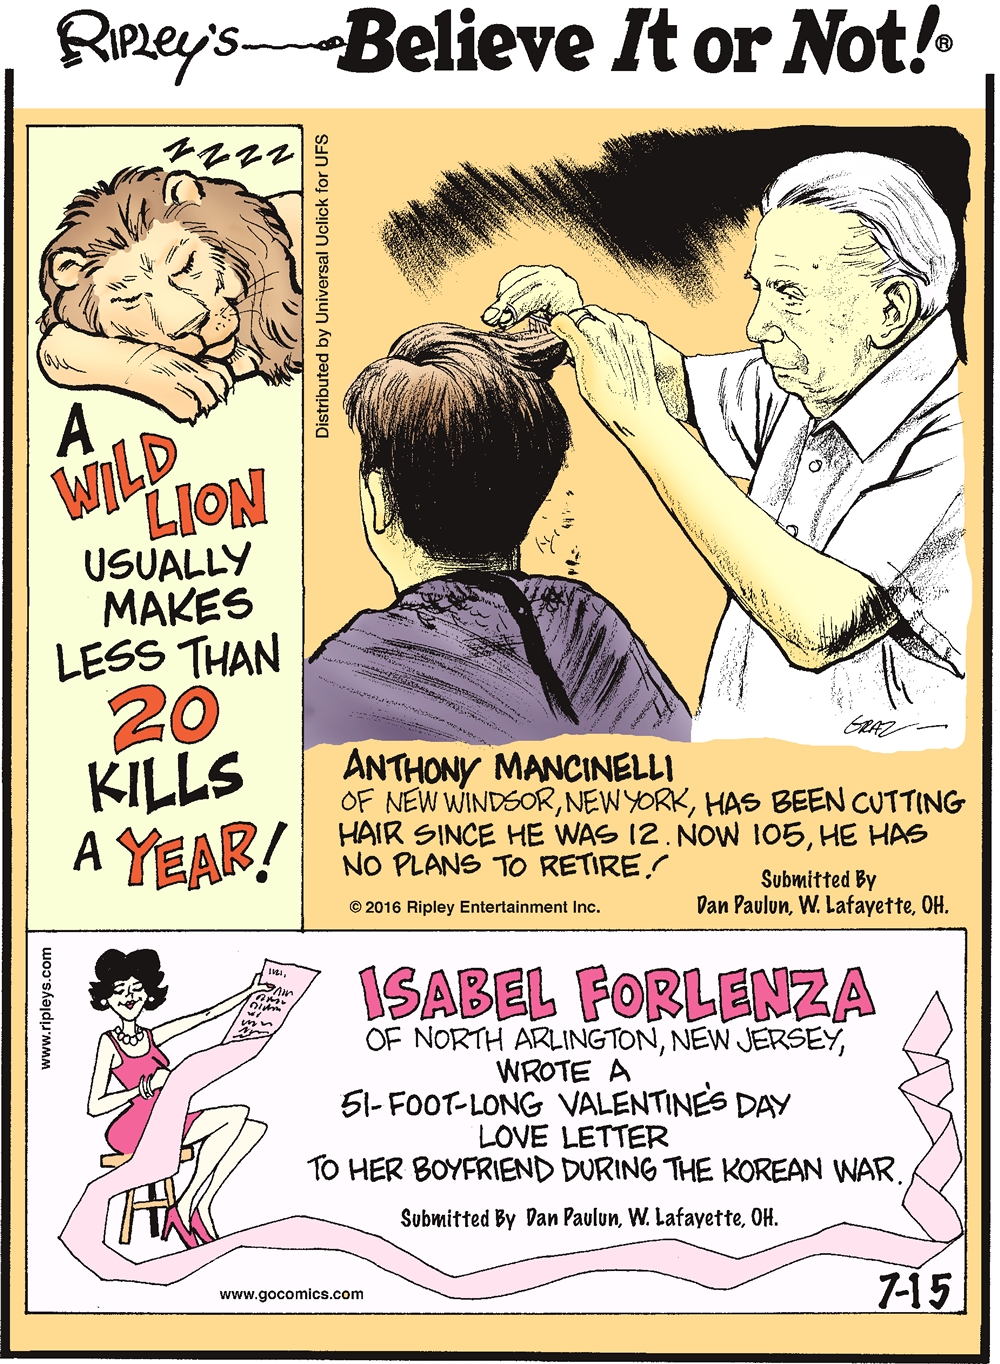 A wild lion usually makes less than 20 kills a year! -------------------- Anthony Mancinelli of New Windsor, New York, has been cutting hair since age 12. Now 105, he has no plans to retire! Submitted by Dan Paulun, W. Lafayette, OH. -------------------- Isabela Forlenza of North Arlington, New Jersey, wrote a 51-foot-long Valentine's Day love letter to her boyfriend during the Korean War. Submitted by Dan Paulun, W. Lafayette, OH.